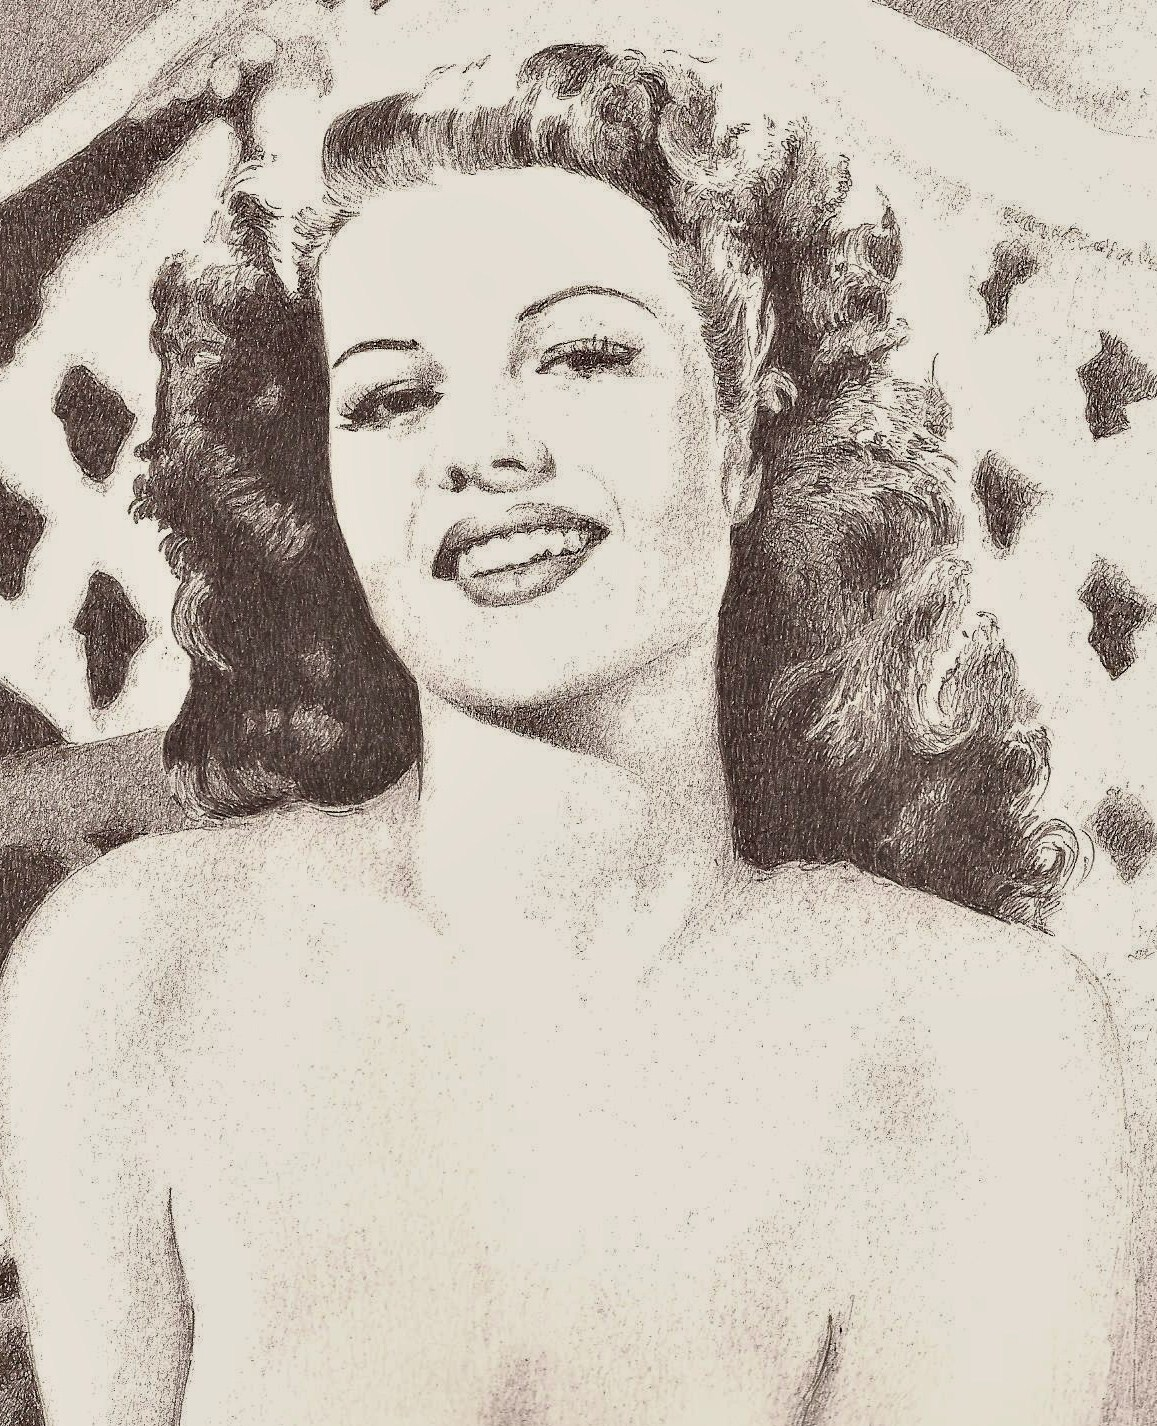 Rita hayworth porn cartoon videos